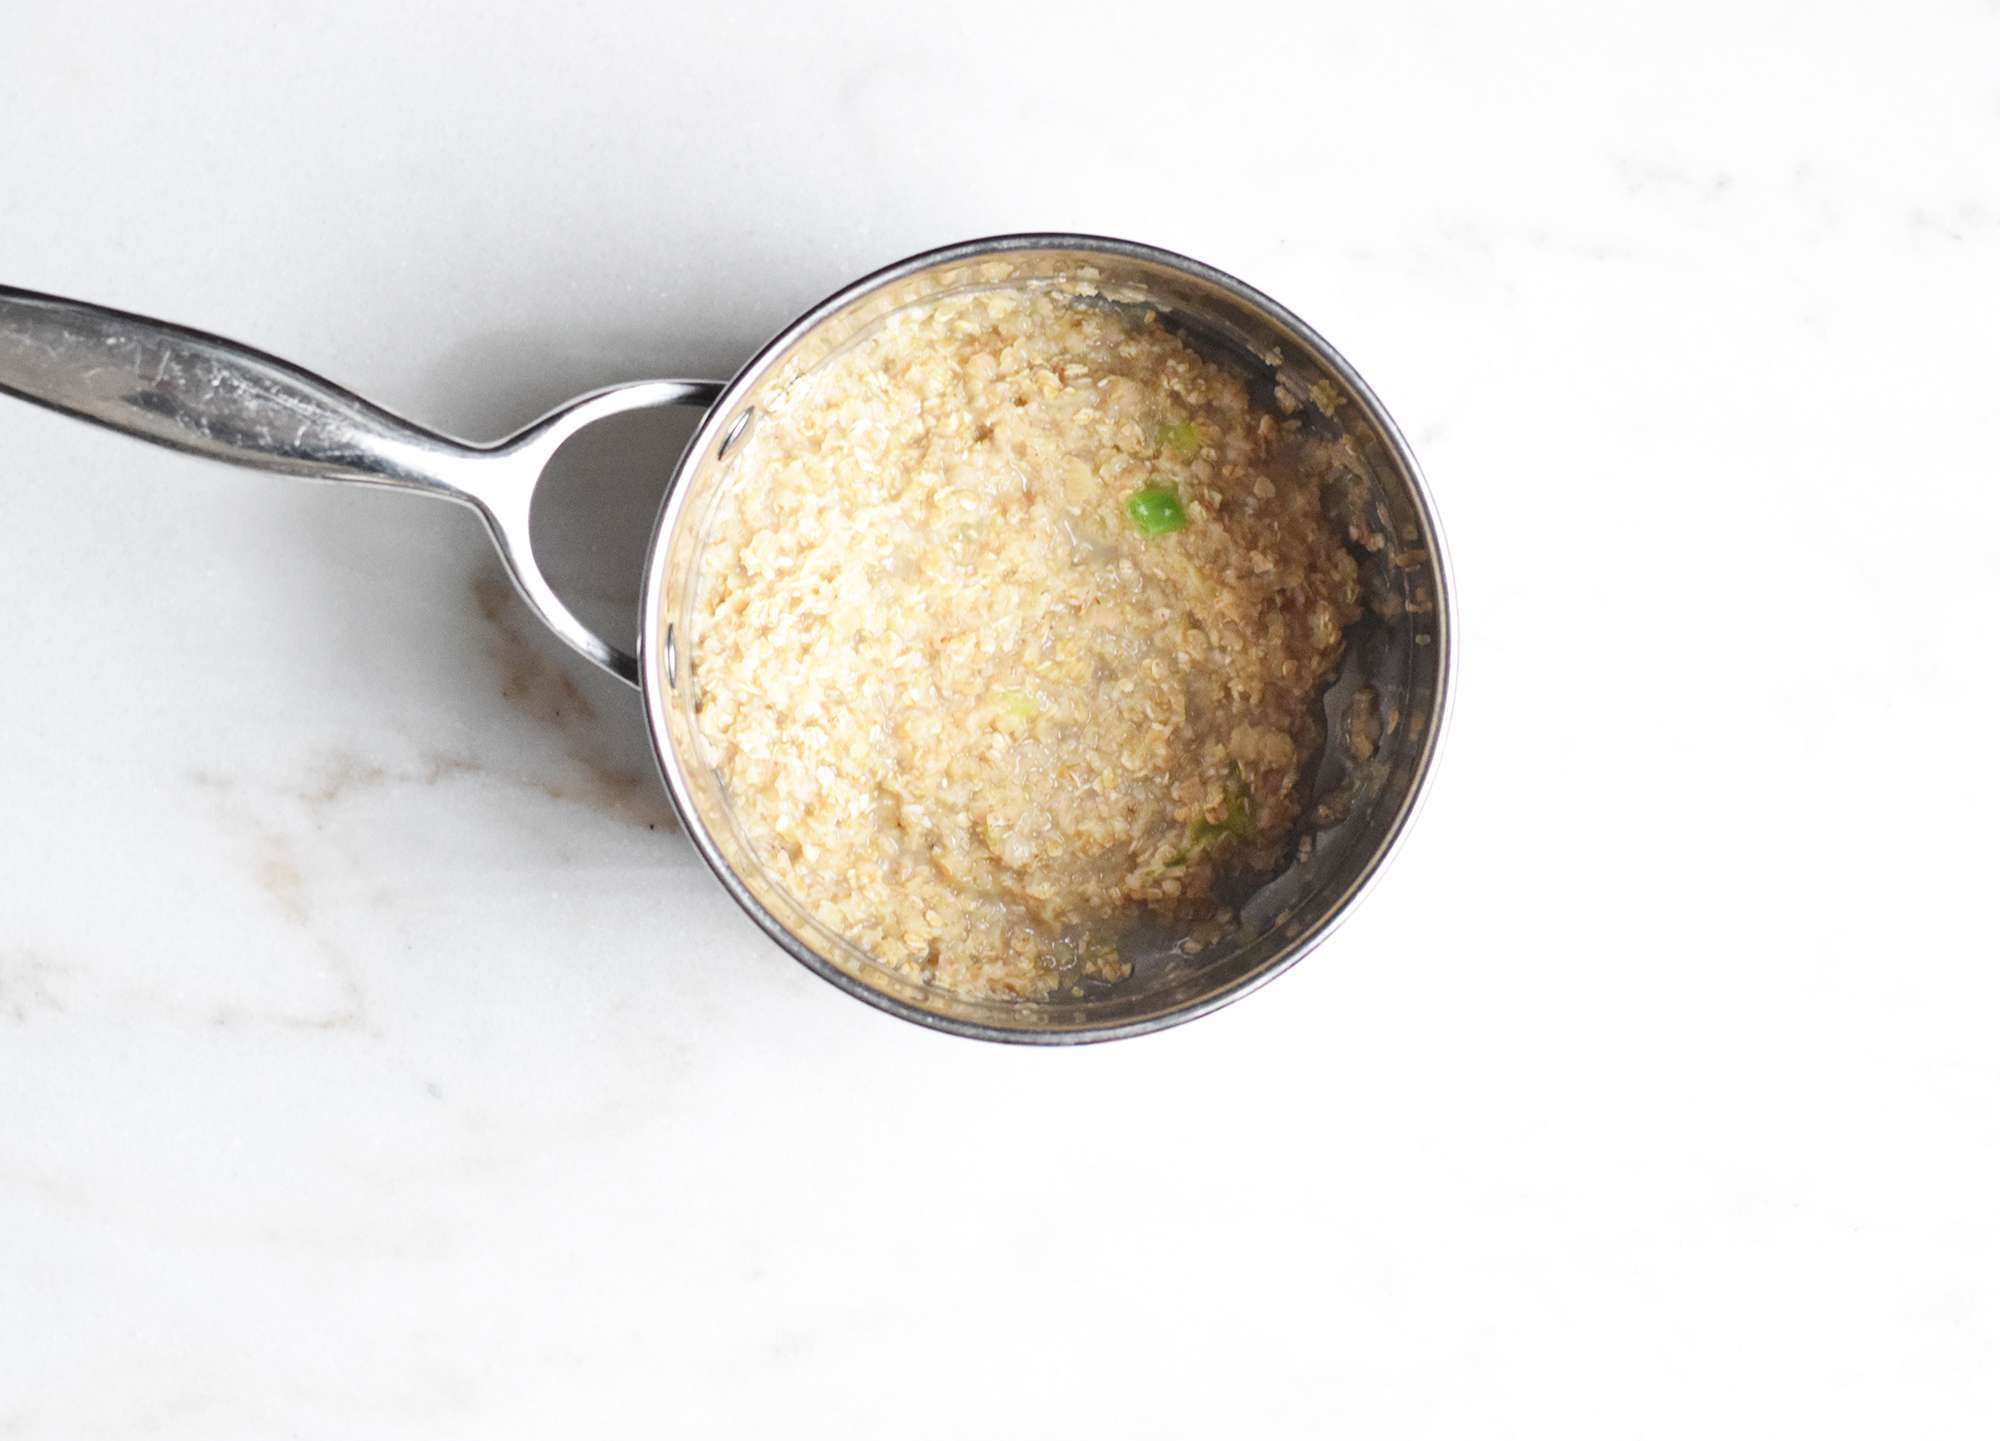 Quick-cooking oats in a saucepan with butter and scallions